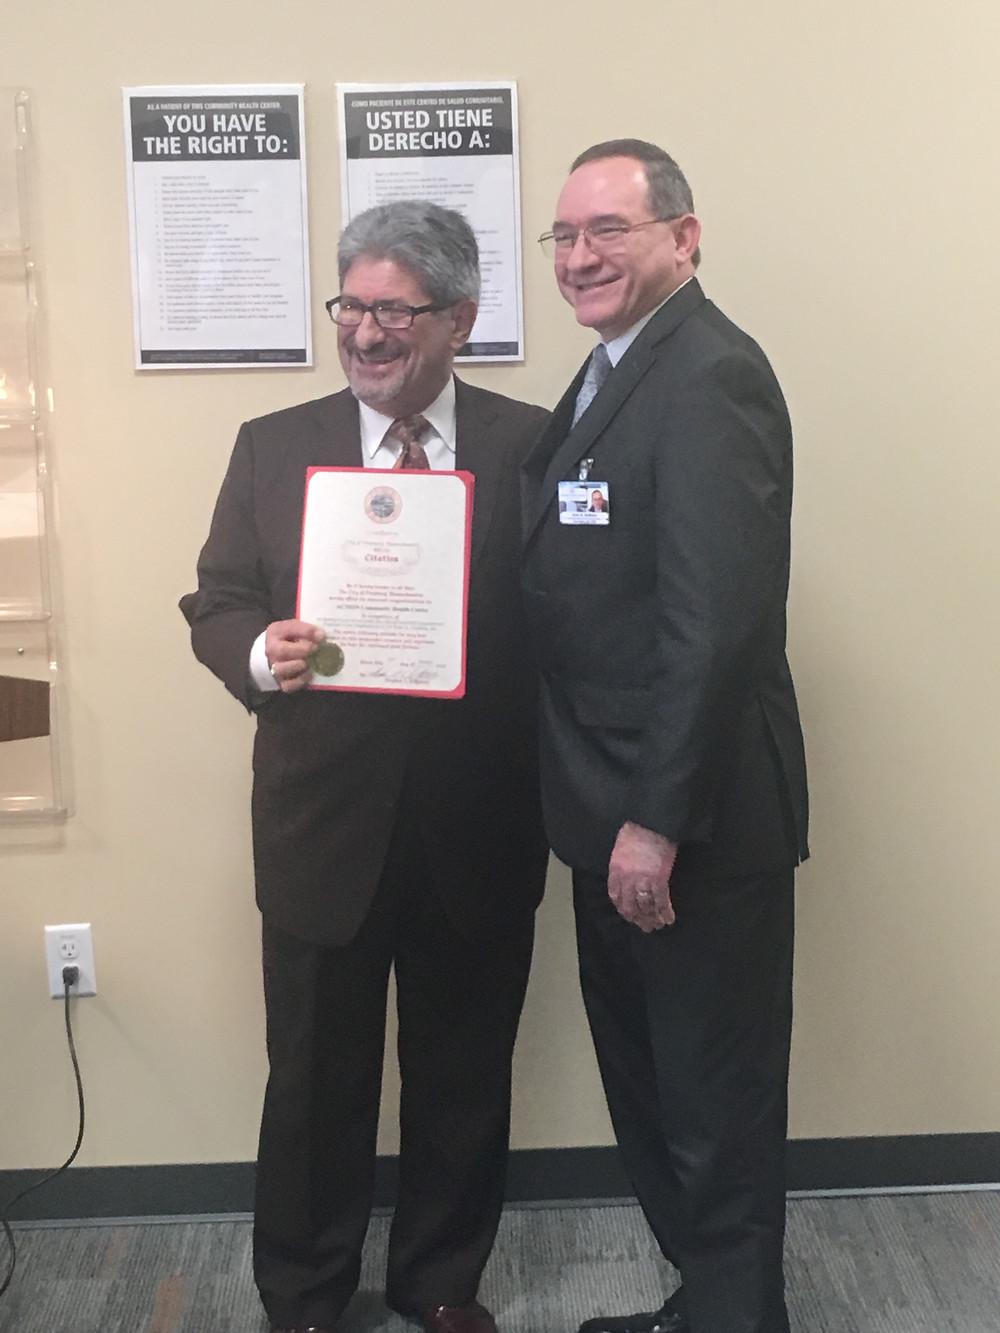 Fitchburg Mayor Stephen DiNatale (left) presents CHC President & CEO John DeMailia (right) with an official citation